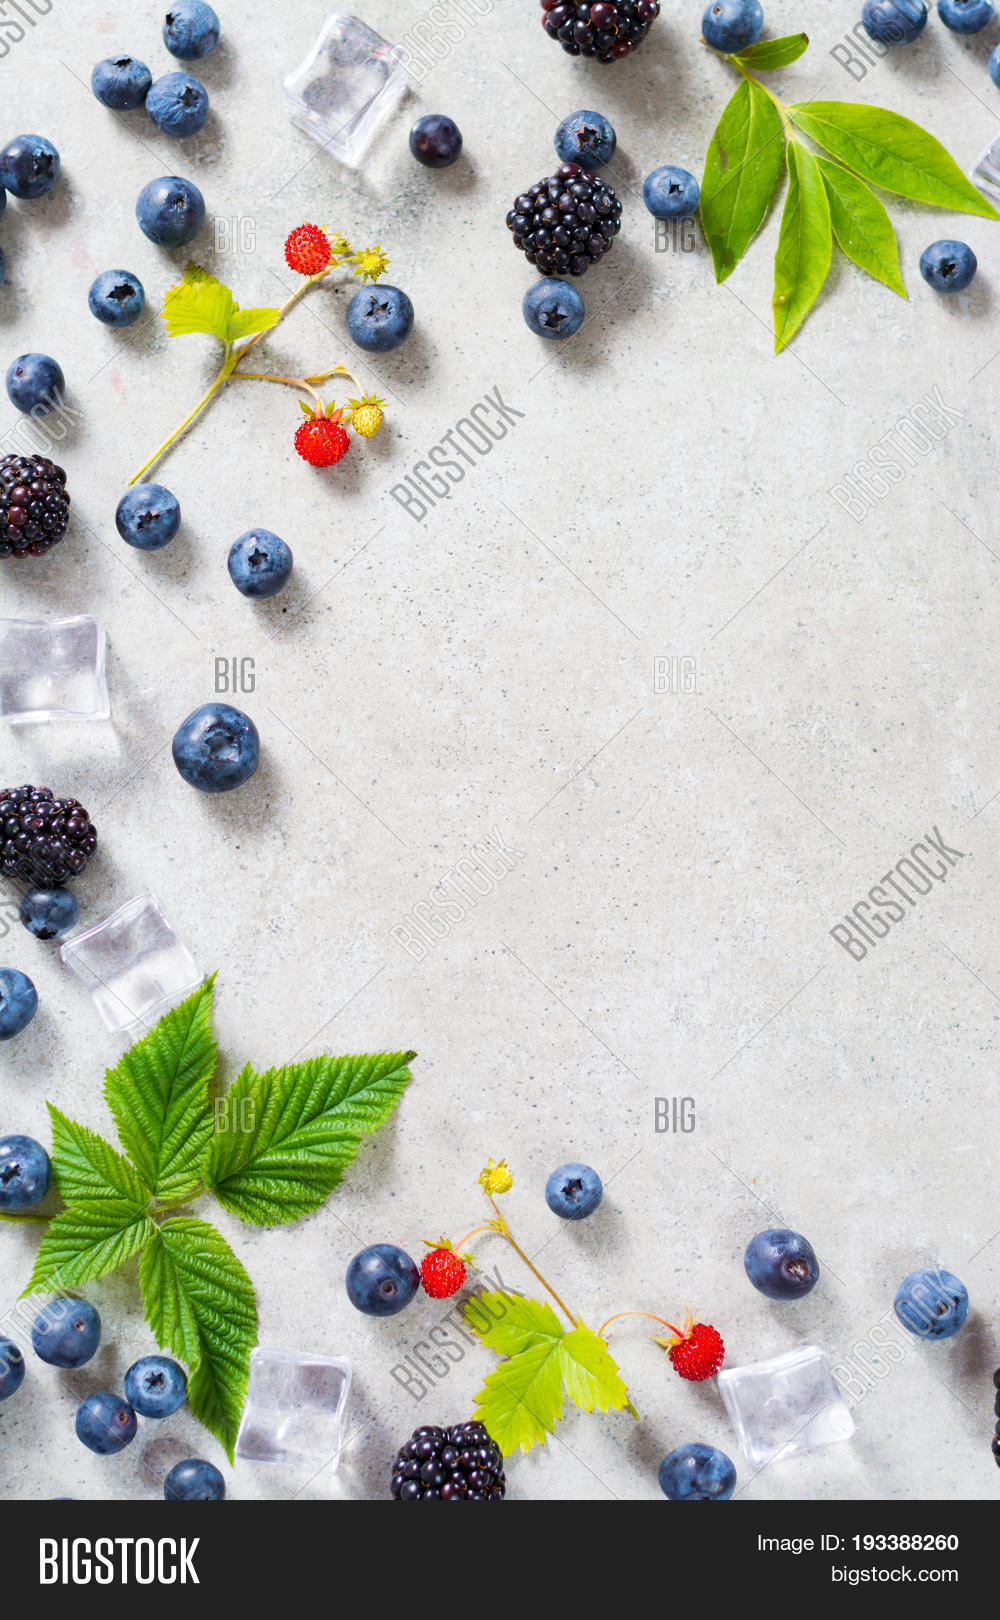 background,berry,blackberry,blueberry,brambleberry,cold,color,colorful,copy,food,forest,fruit,garden,harvest,healthy,leaves,organic,pick,plate,produce,red,space,strawberry,summer,tasty,vitamin,wild